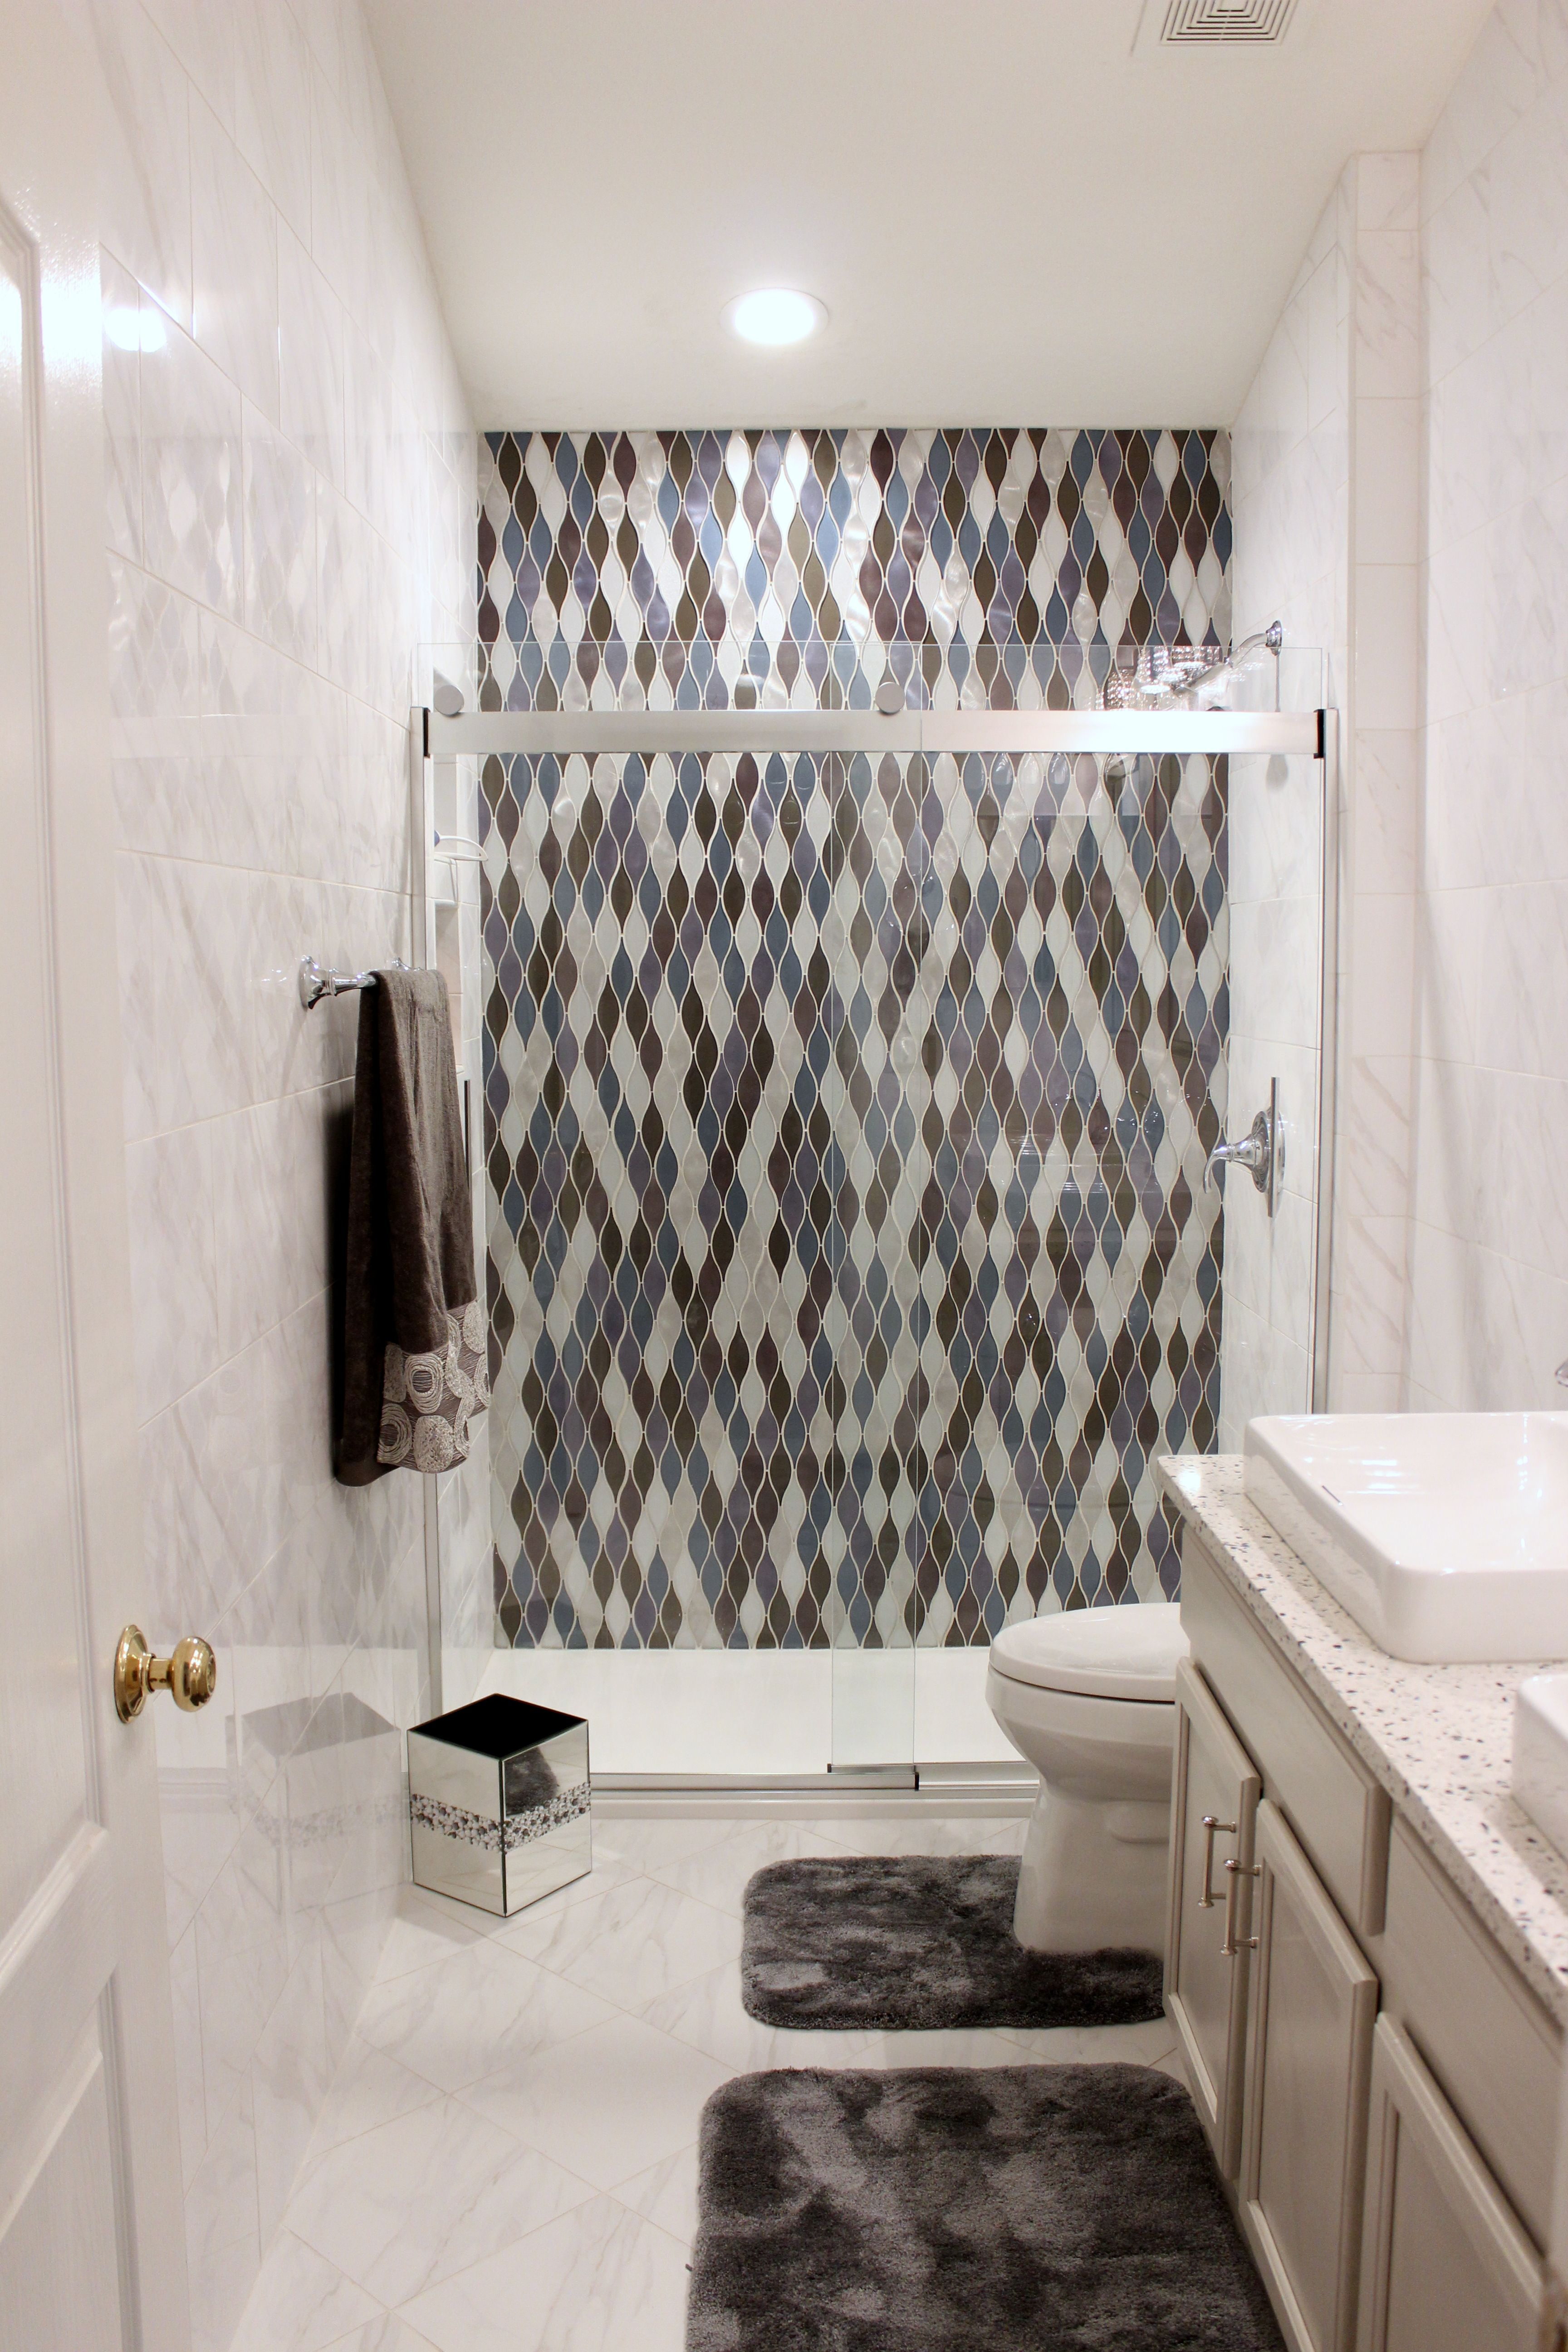 This Guest Bath Features A Stunning Shower Accent Wall Floor To Ceiling Tile Walls Recylced Glass Counter Bathroom Shower Half Wall Shower Bathroom Wall Tile